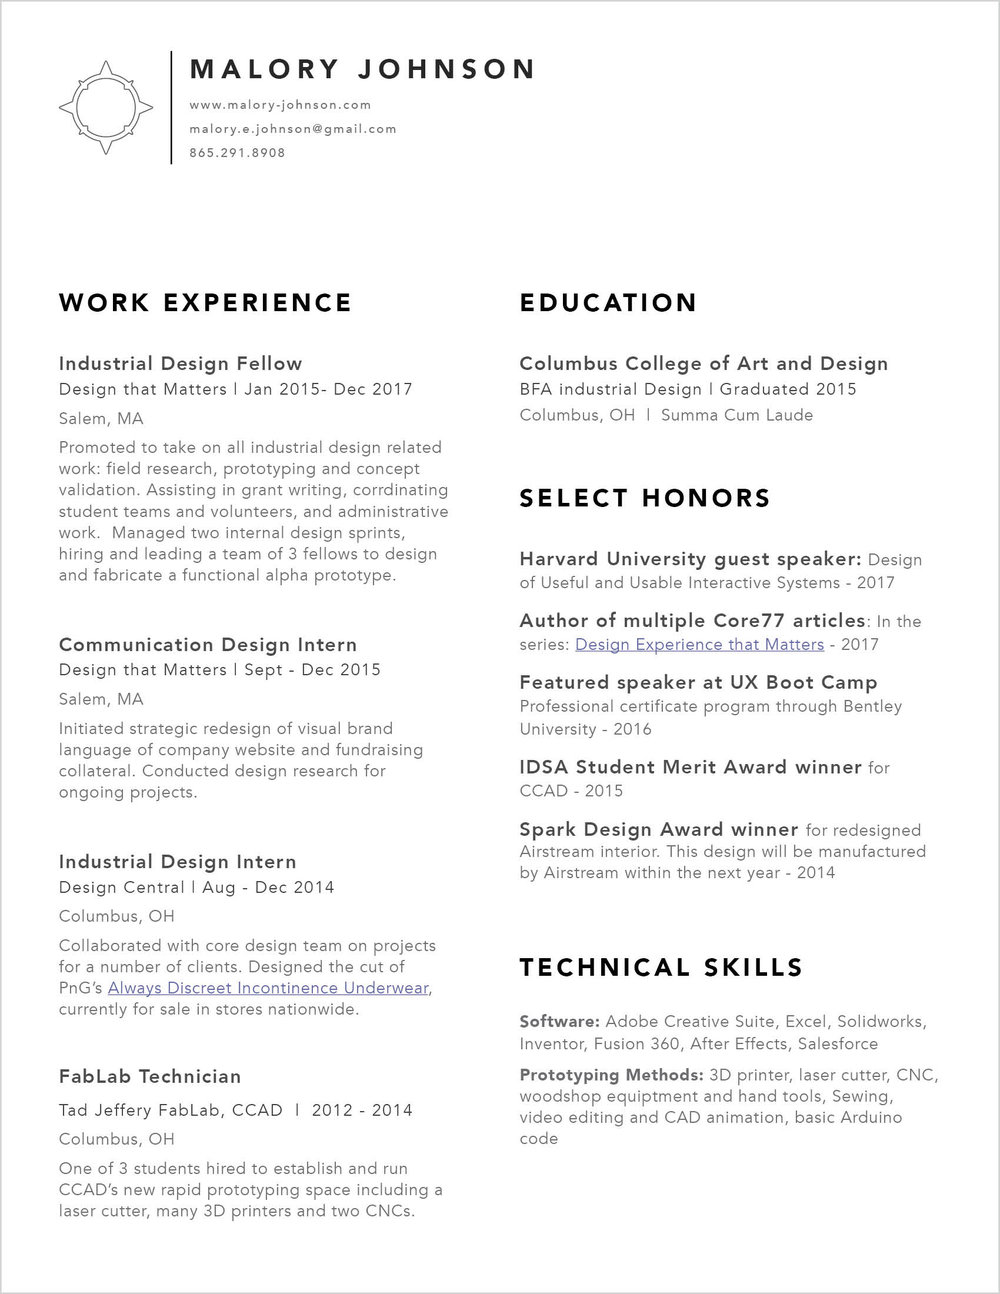 Malory Johnson Resume 2018.jpg